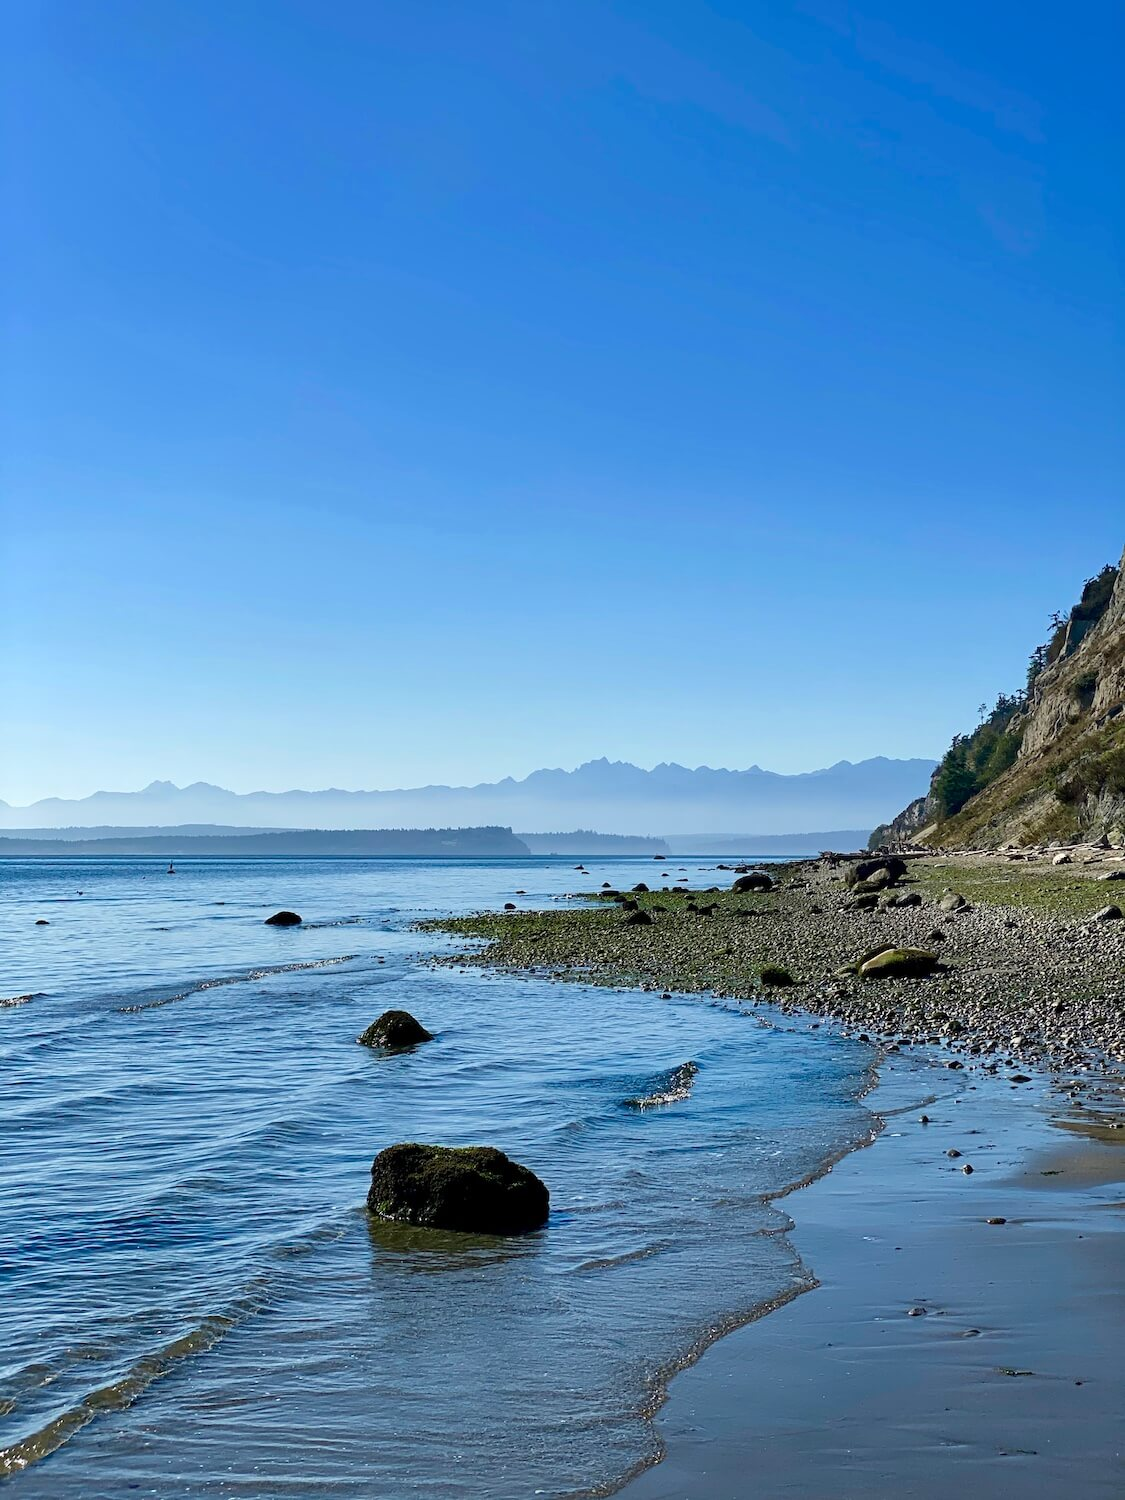 A great thing to do on Whidbey Island is to comb the beach for rocks and shells. This photo shows the beatify of the Olympic Mountains in the background while gentle waves lap up onto the beach which also has a number of small rocks.